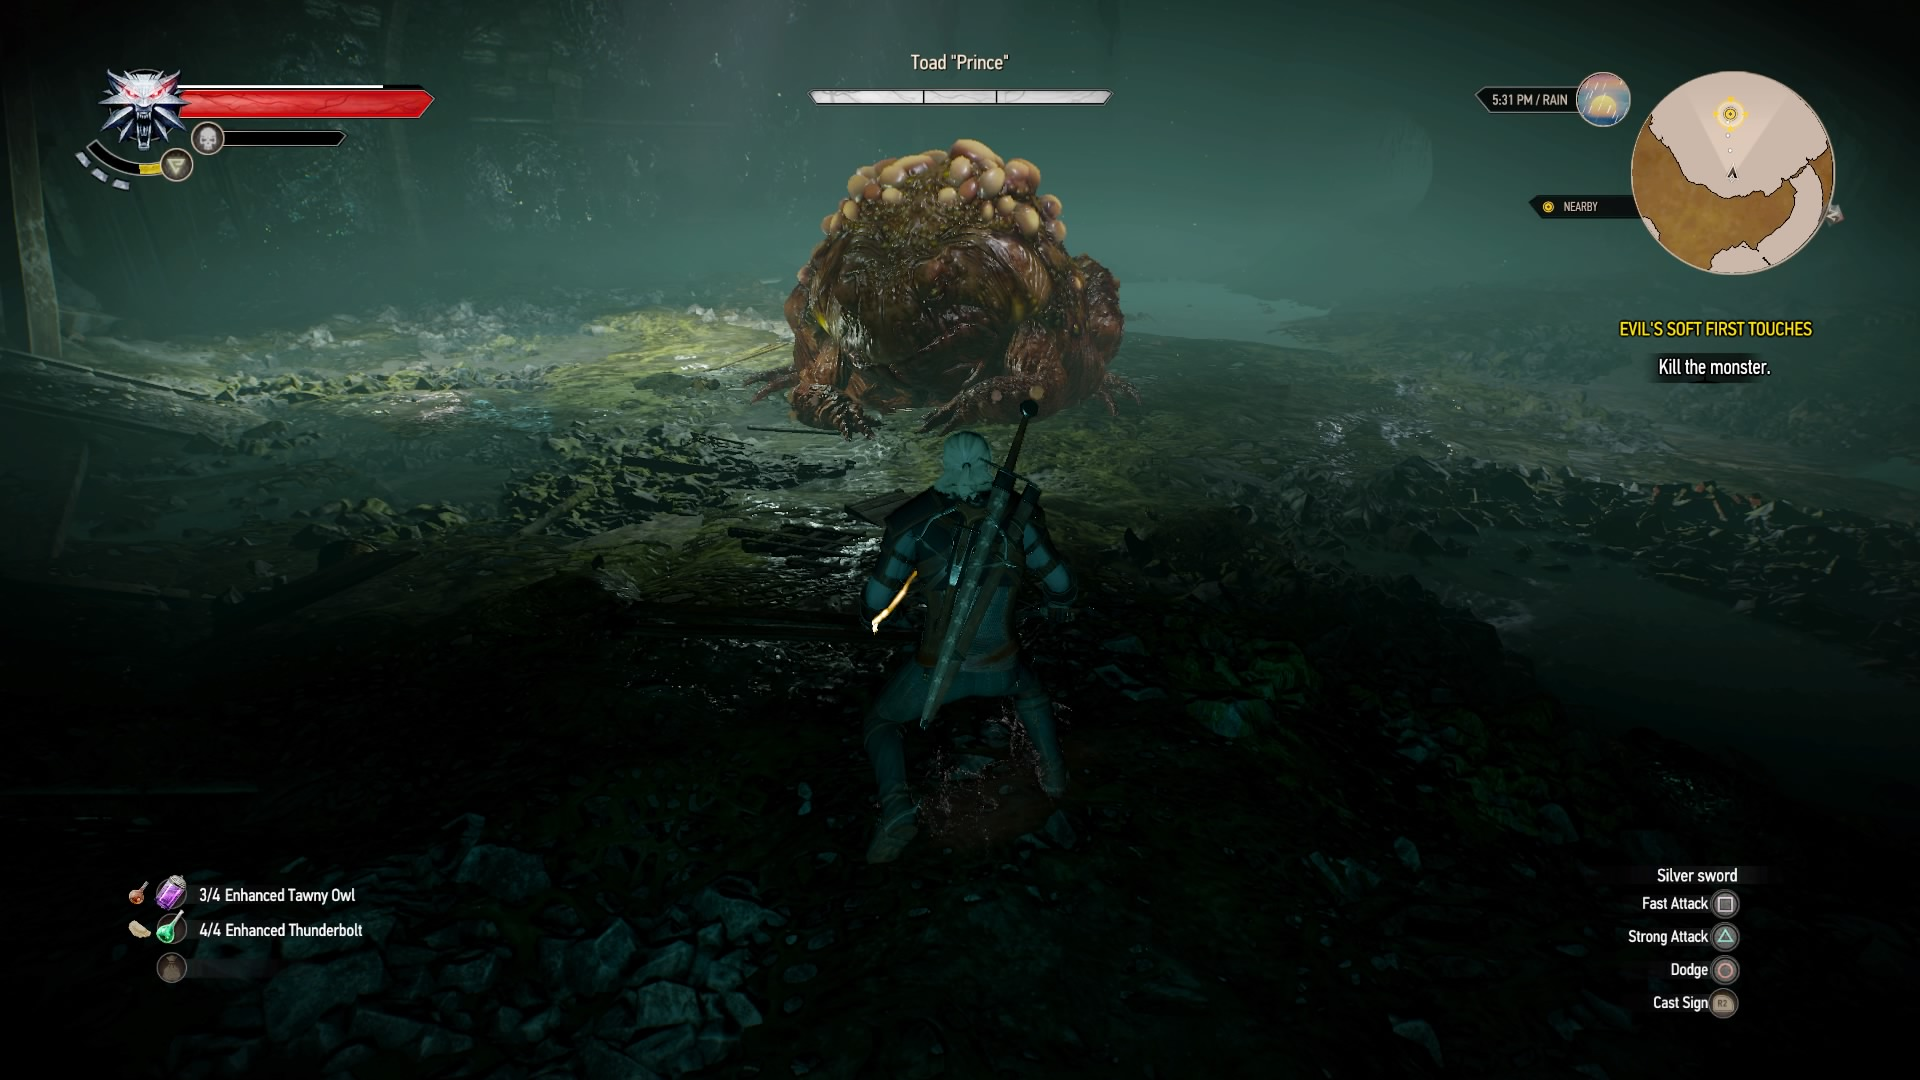 The Witcher 3: Hearts of Stone Boss Walkthrough - The Toad